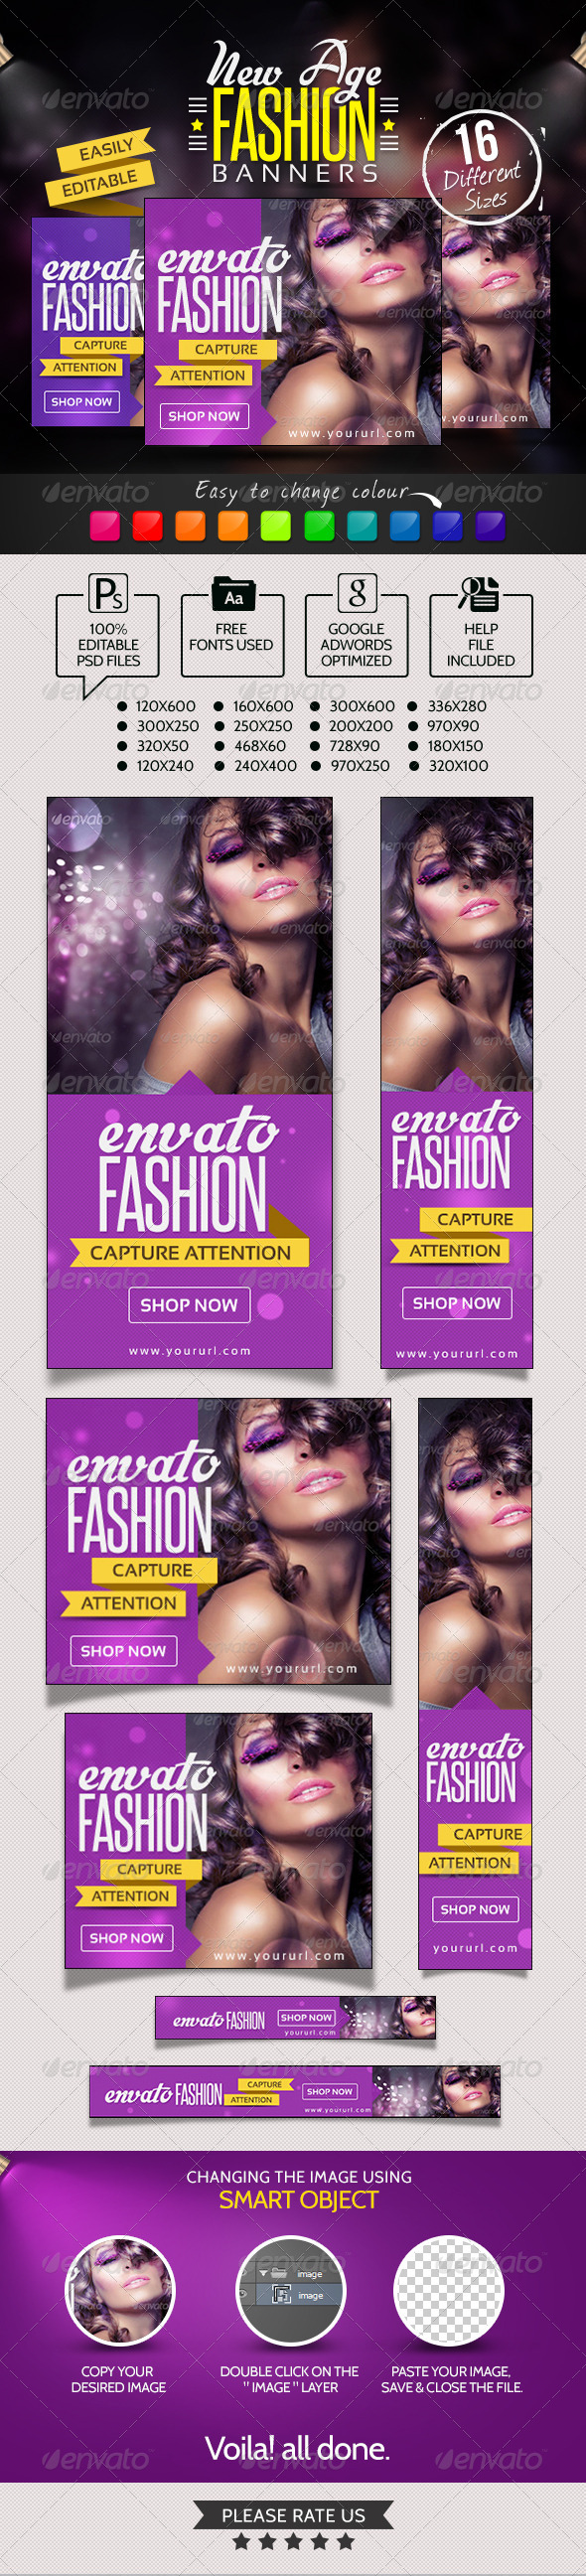 New Age Fashion Banners - Banners & Ads Web Elements